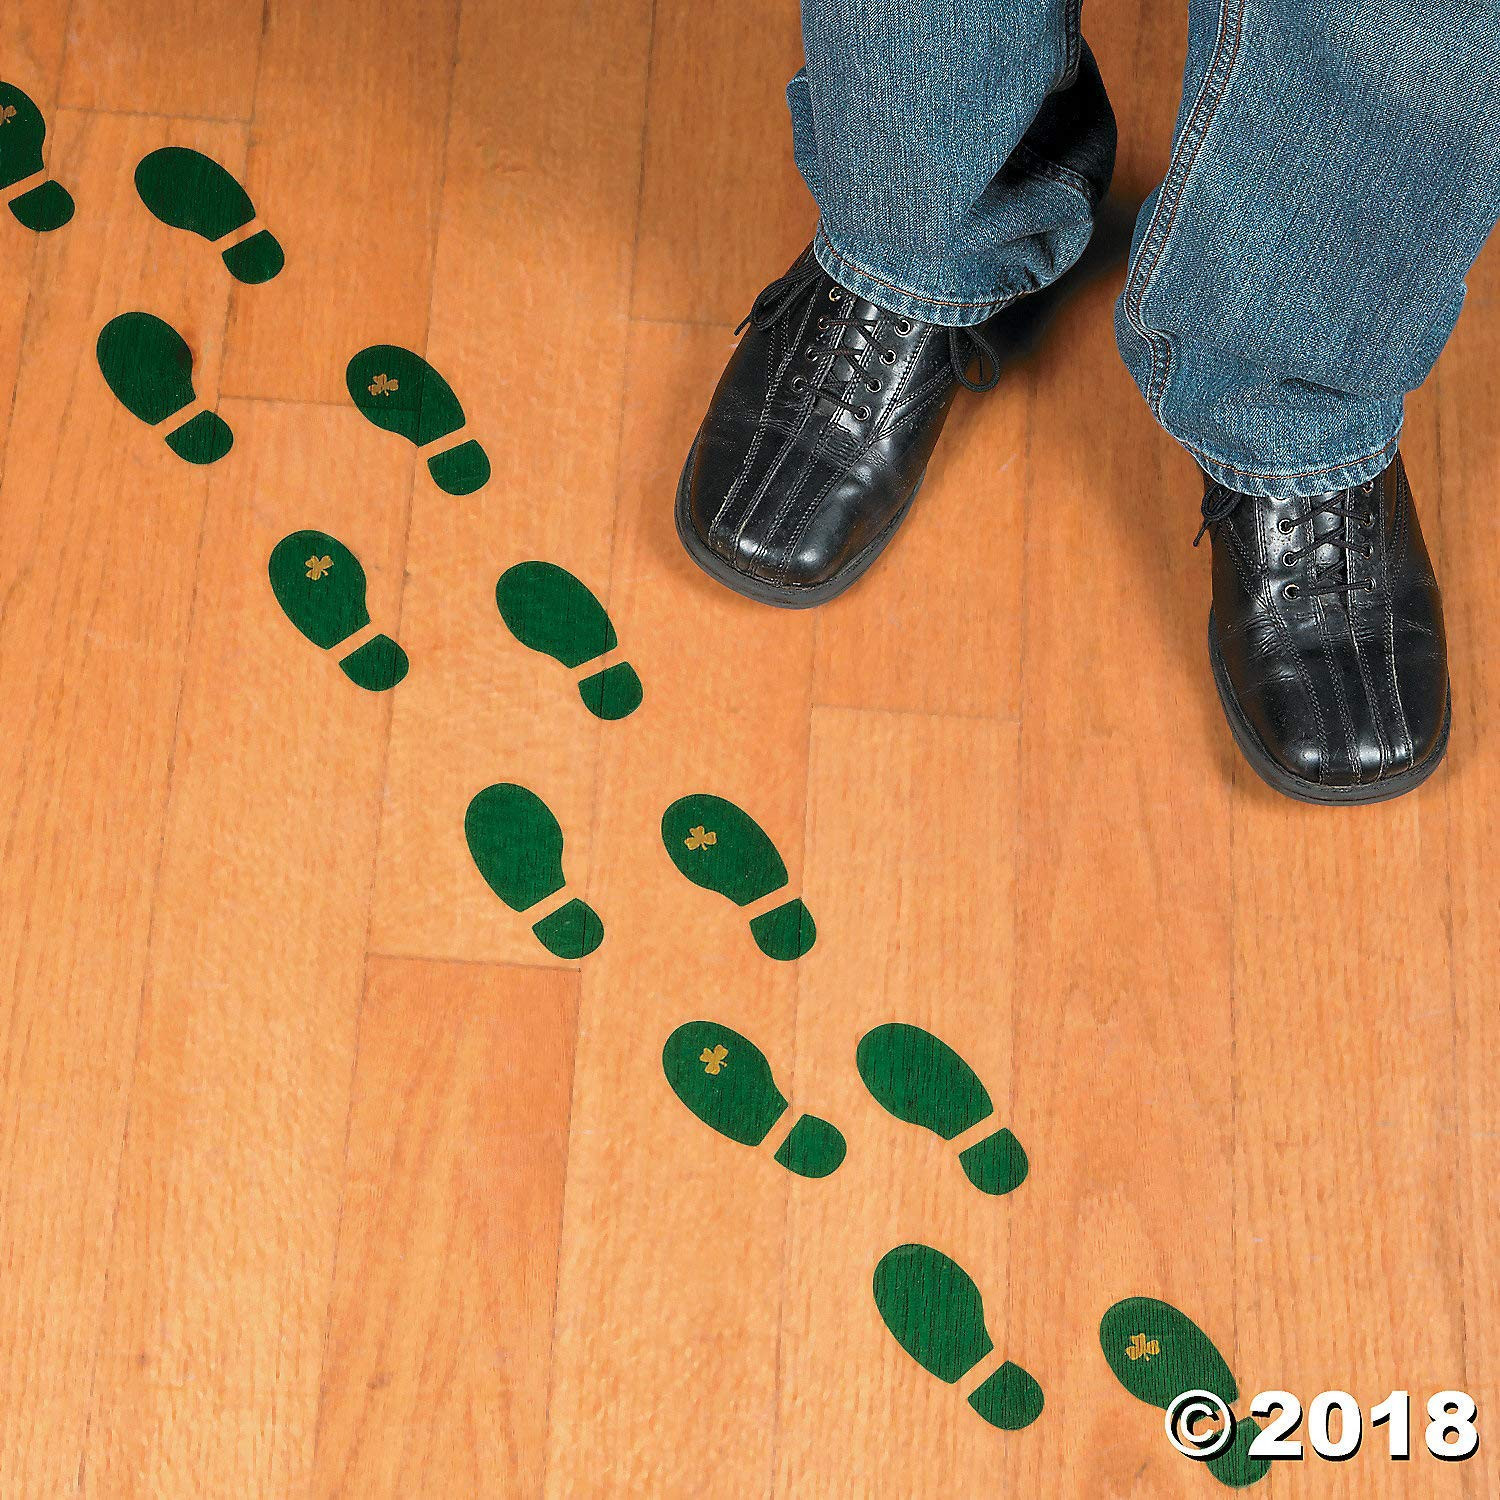 bsl hardwood flooring of amazon com leprechaun footprint floor decals 16 pairs st pertaining to amazon com leprechaun footprint floor decals 16 pairs st patricks day party decor toys games